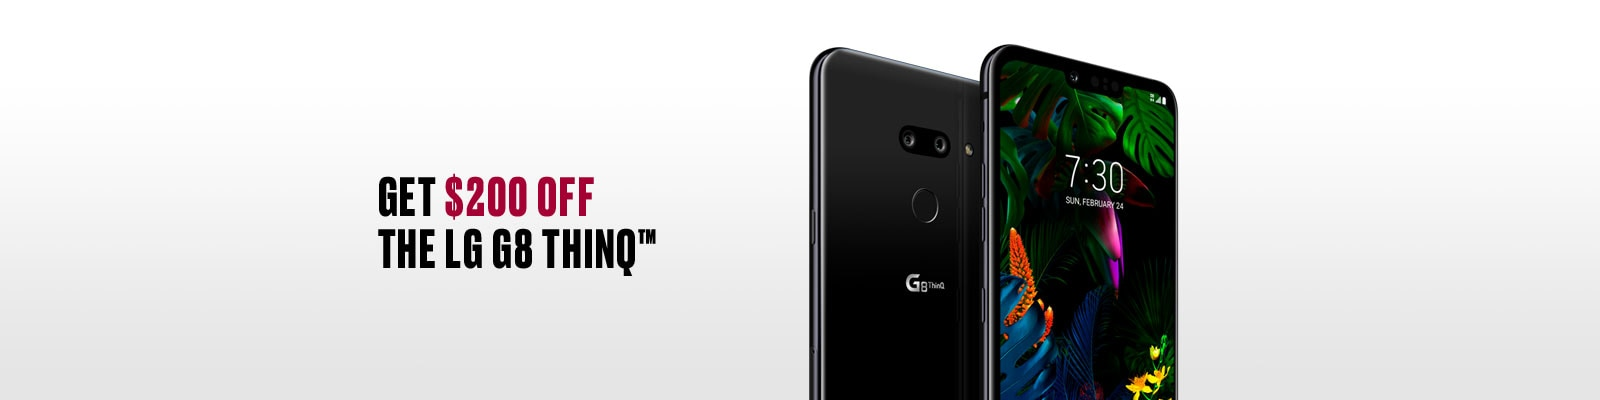 US Cellular LG G8 Promo. Get $200 off the LG G8 ThinQ.